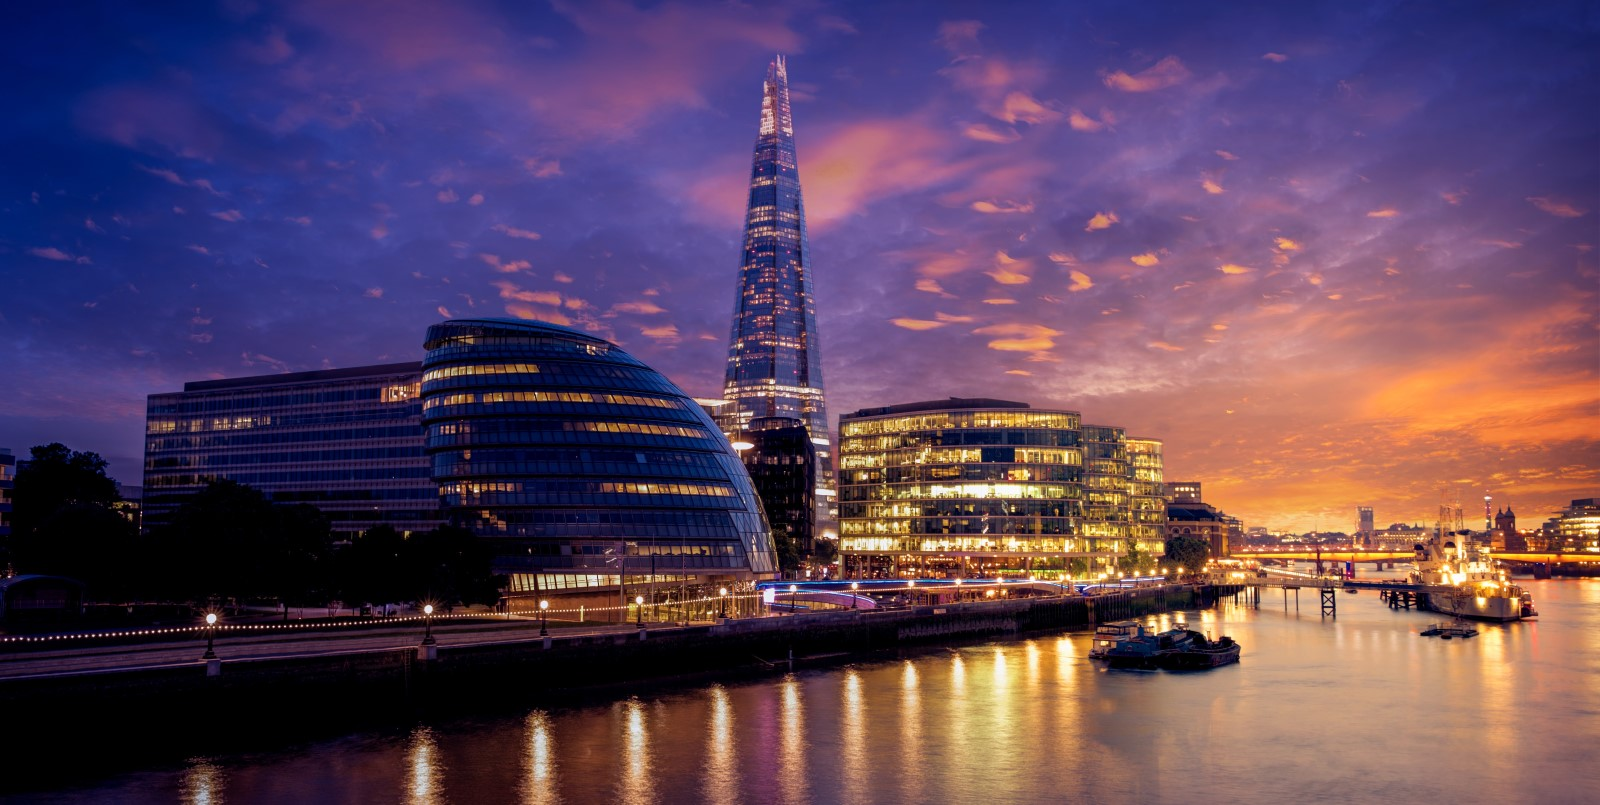 General - Cityscape - London - shutterstock_576162121.jpg